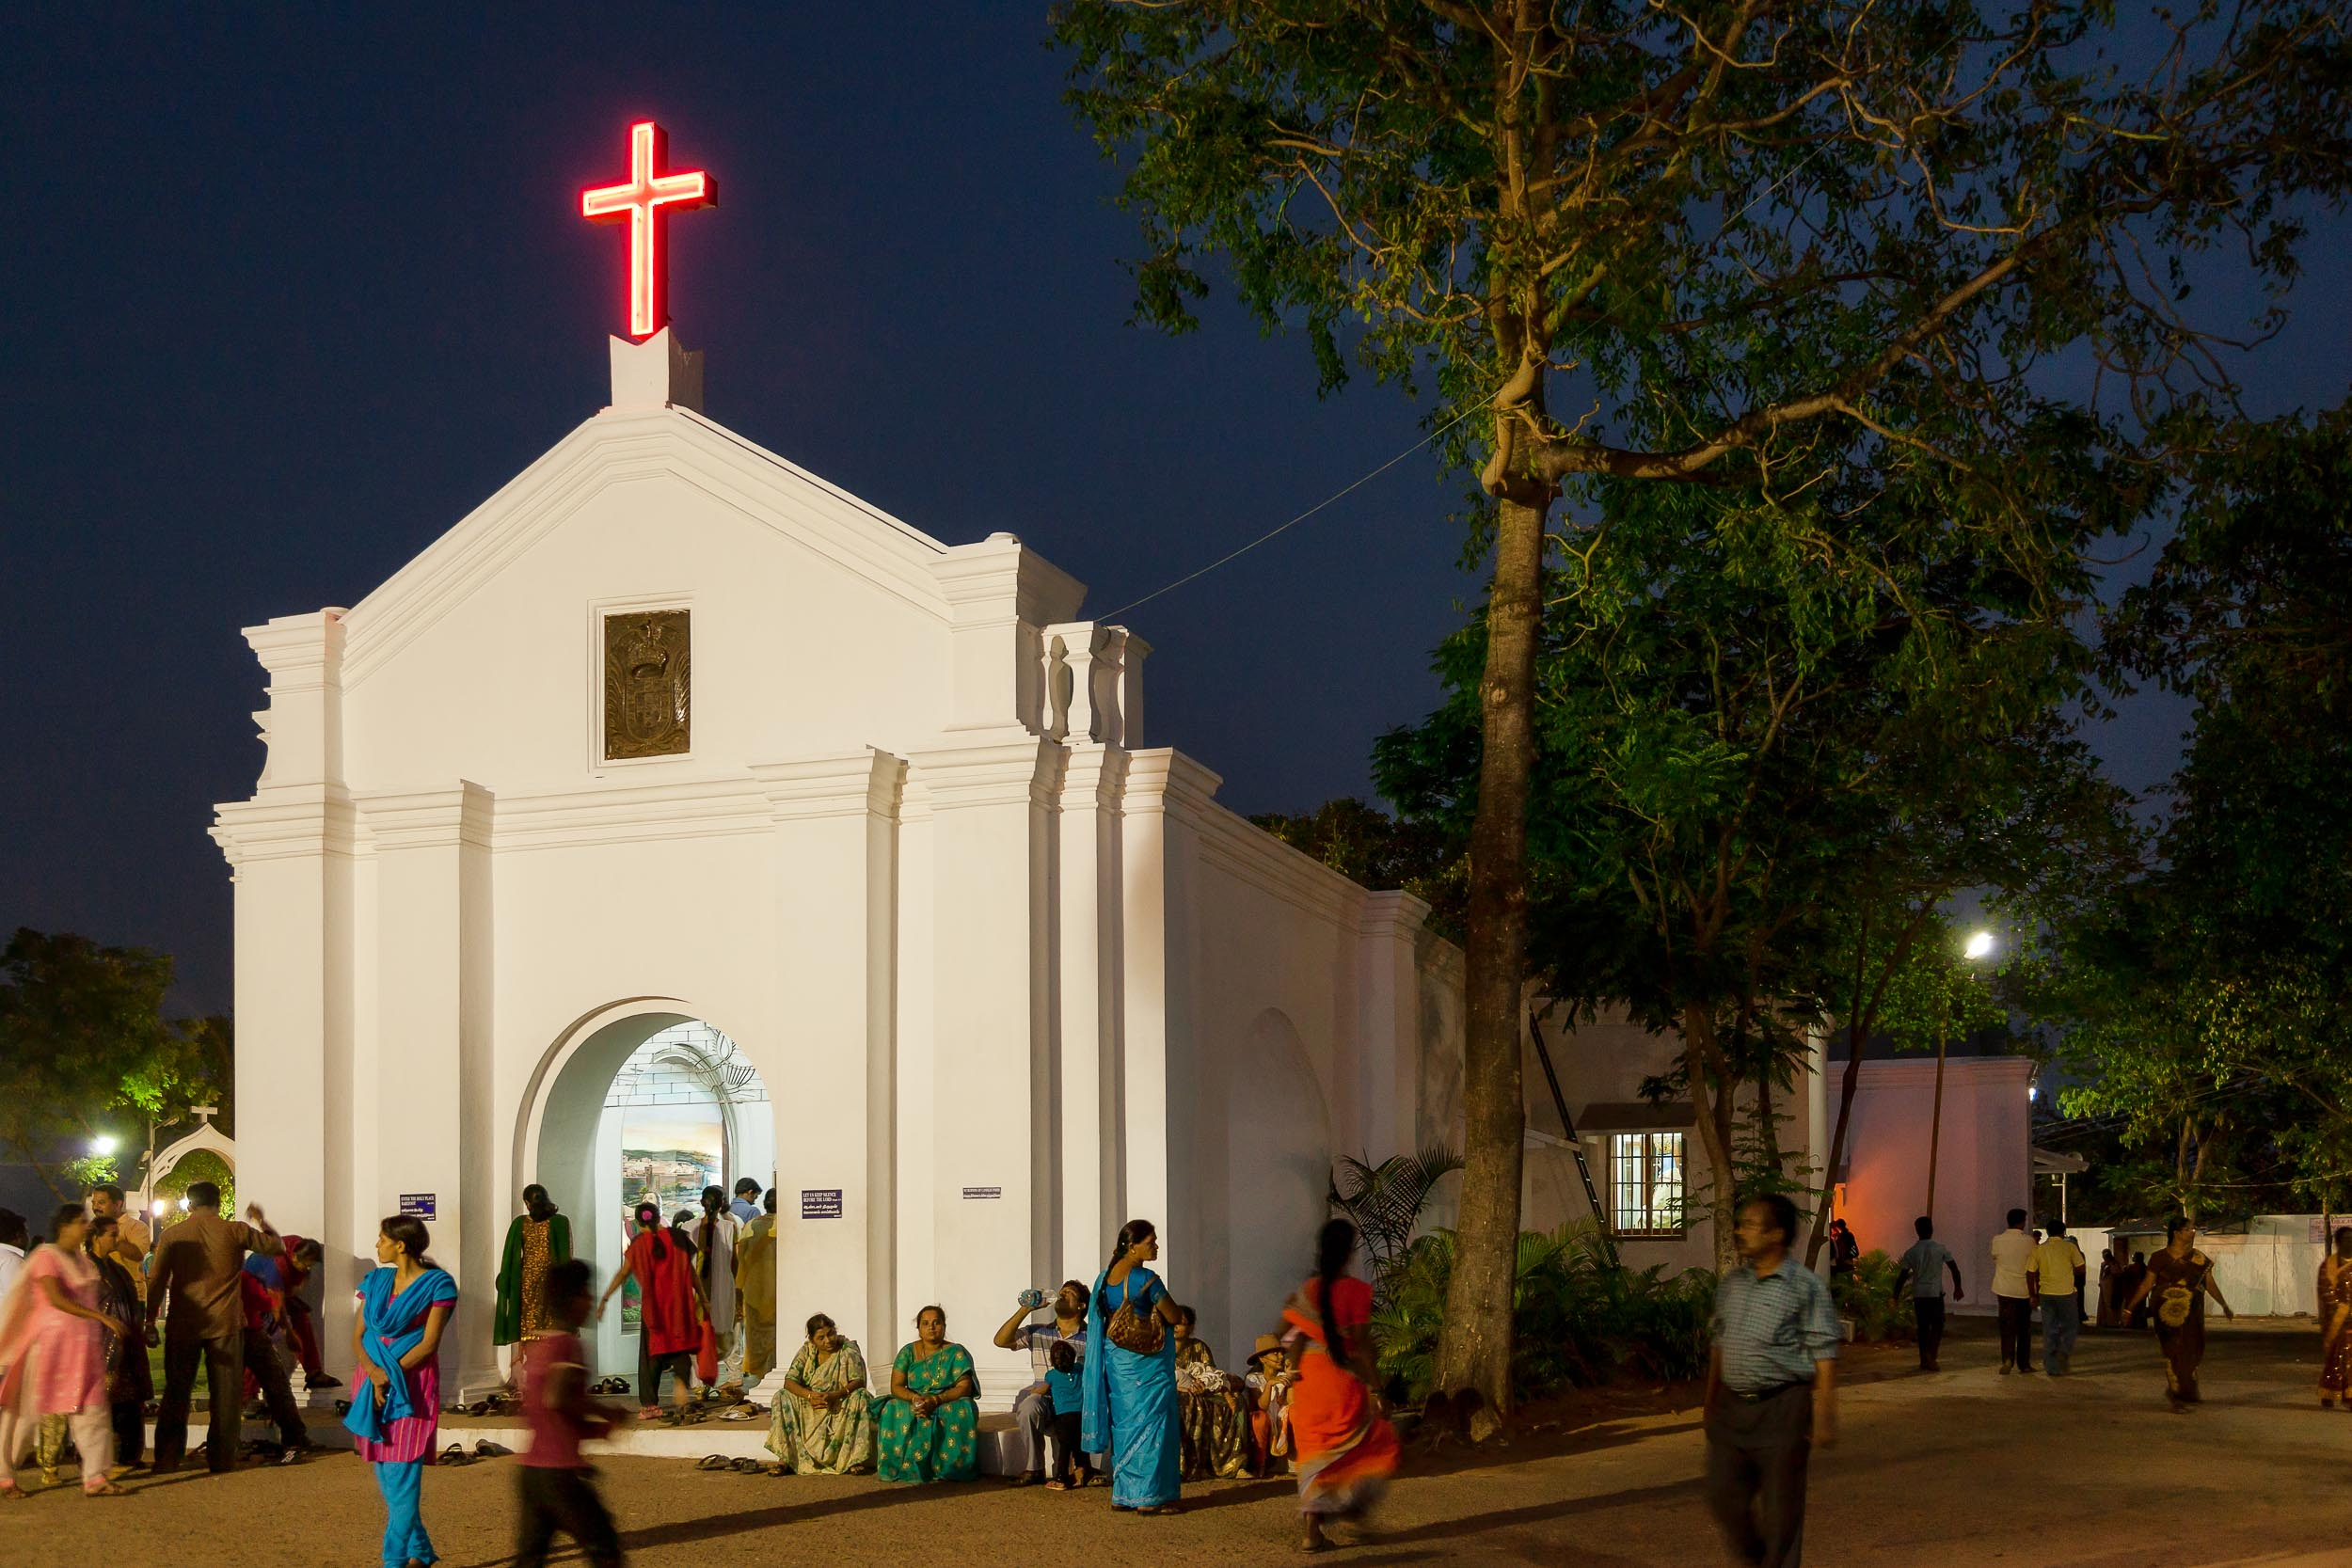 Days end, after an evening service at    St. Thomas Mount National Shrine    in    Chennai, India   .